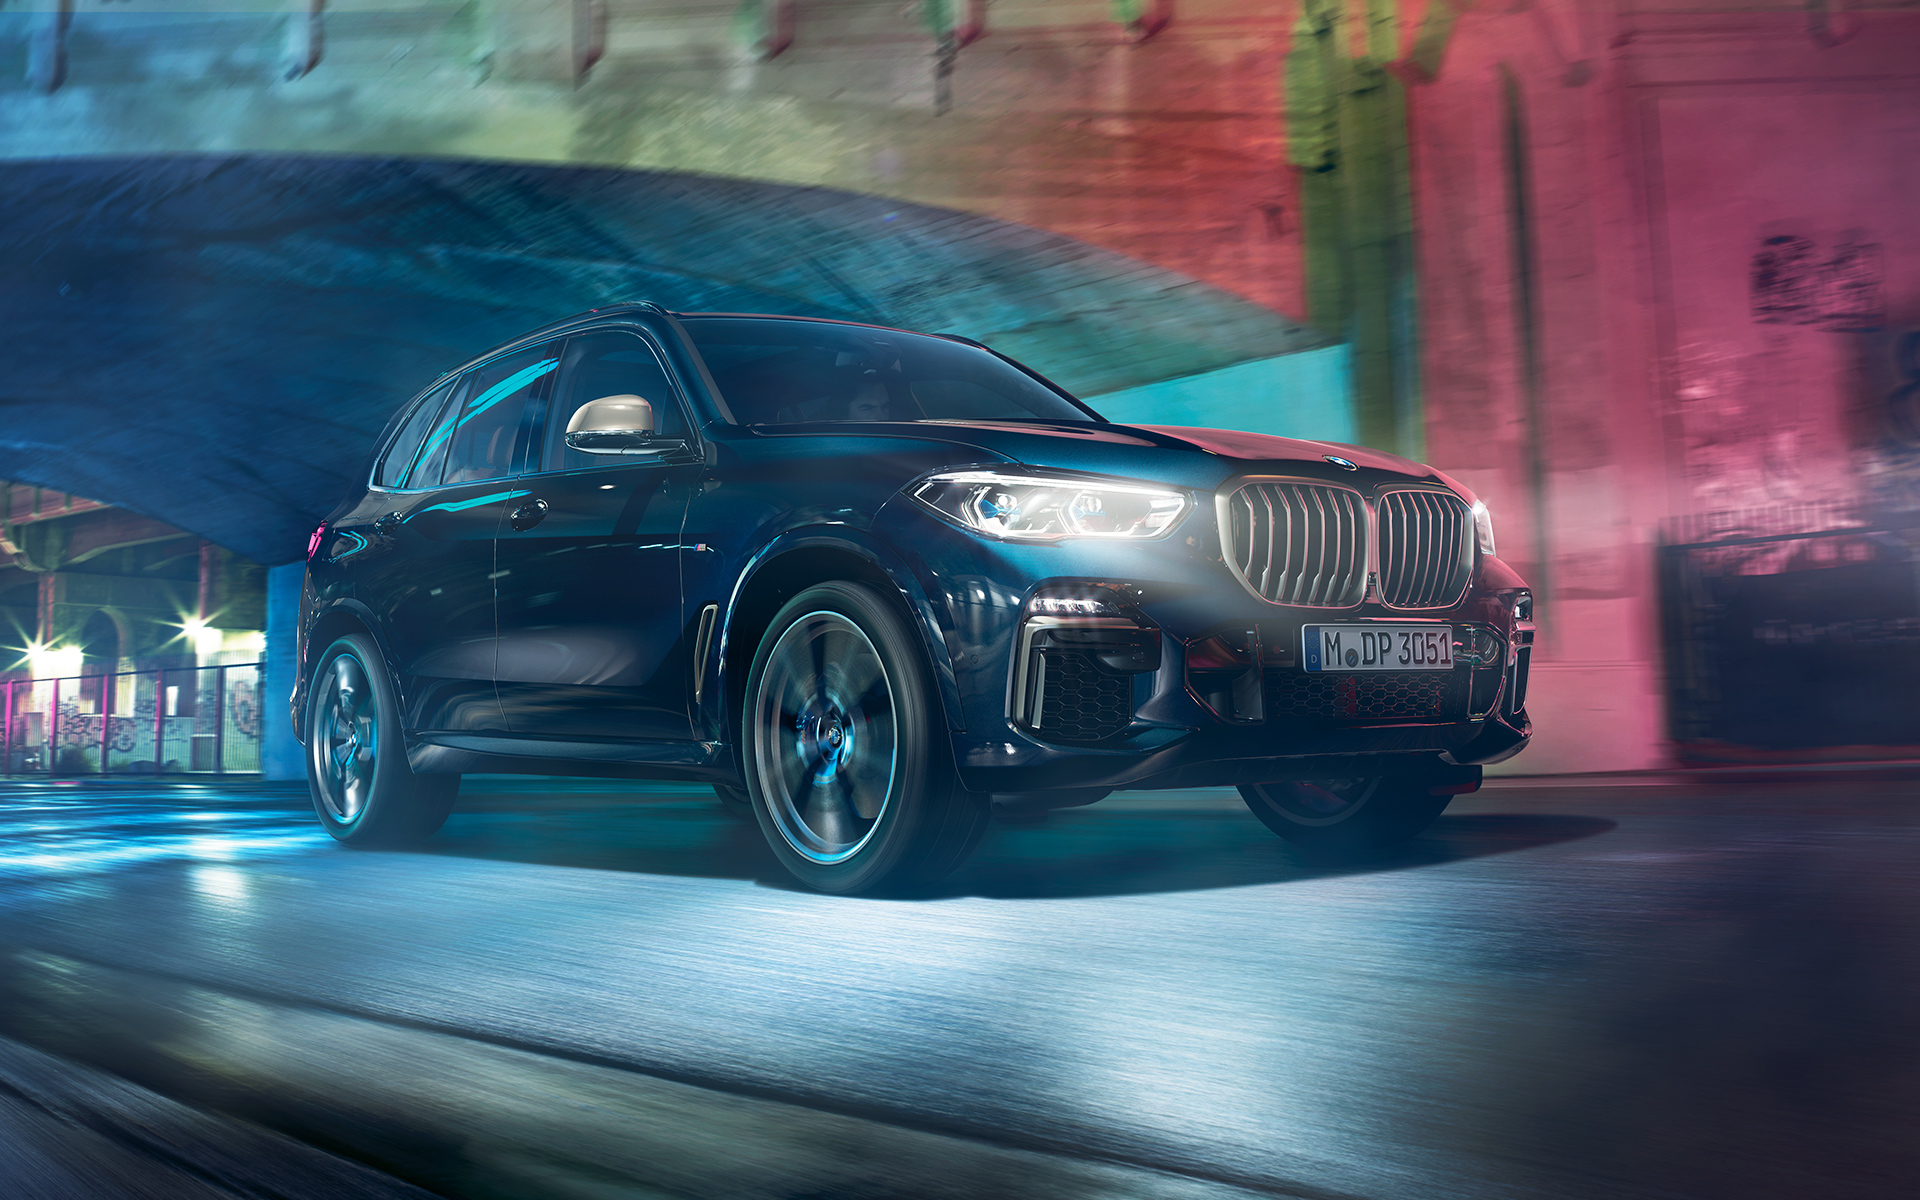 Driving shot of the BMW X5 M50d at night in an urban setting